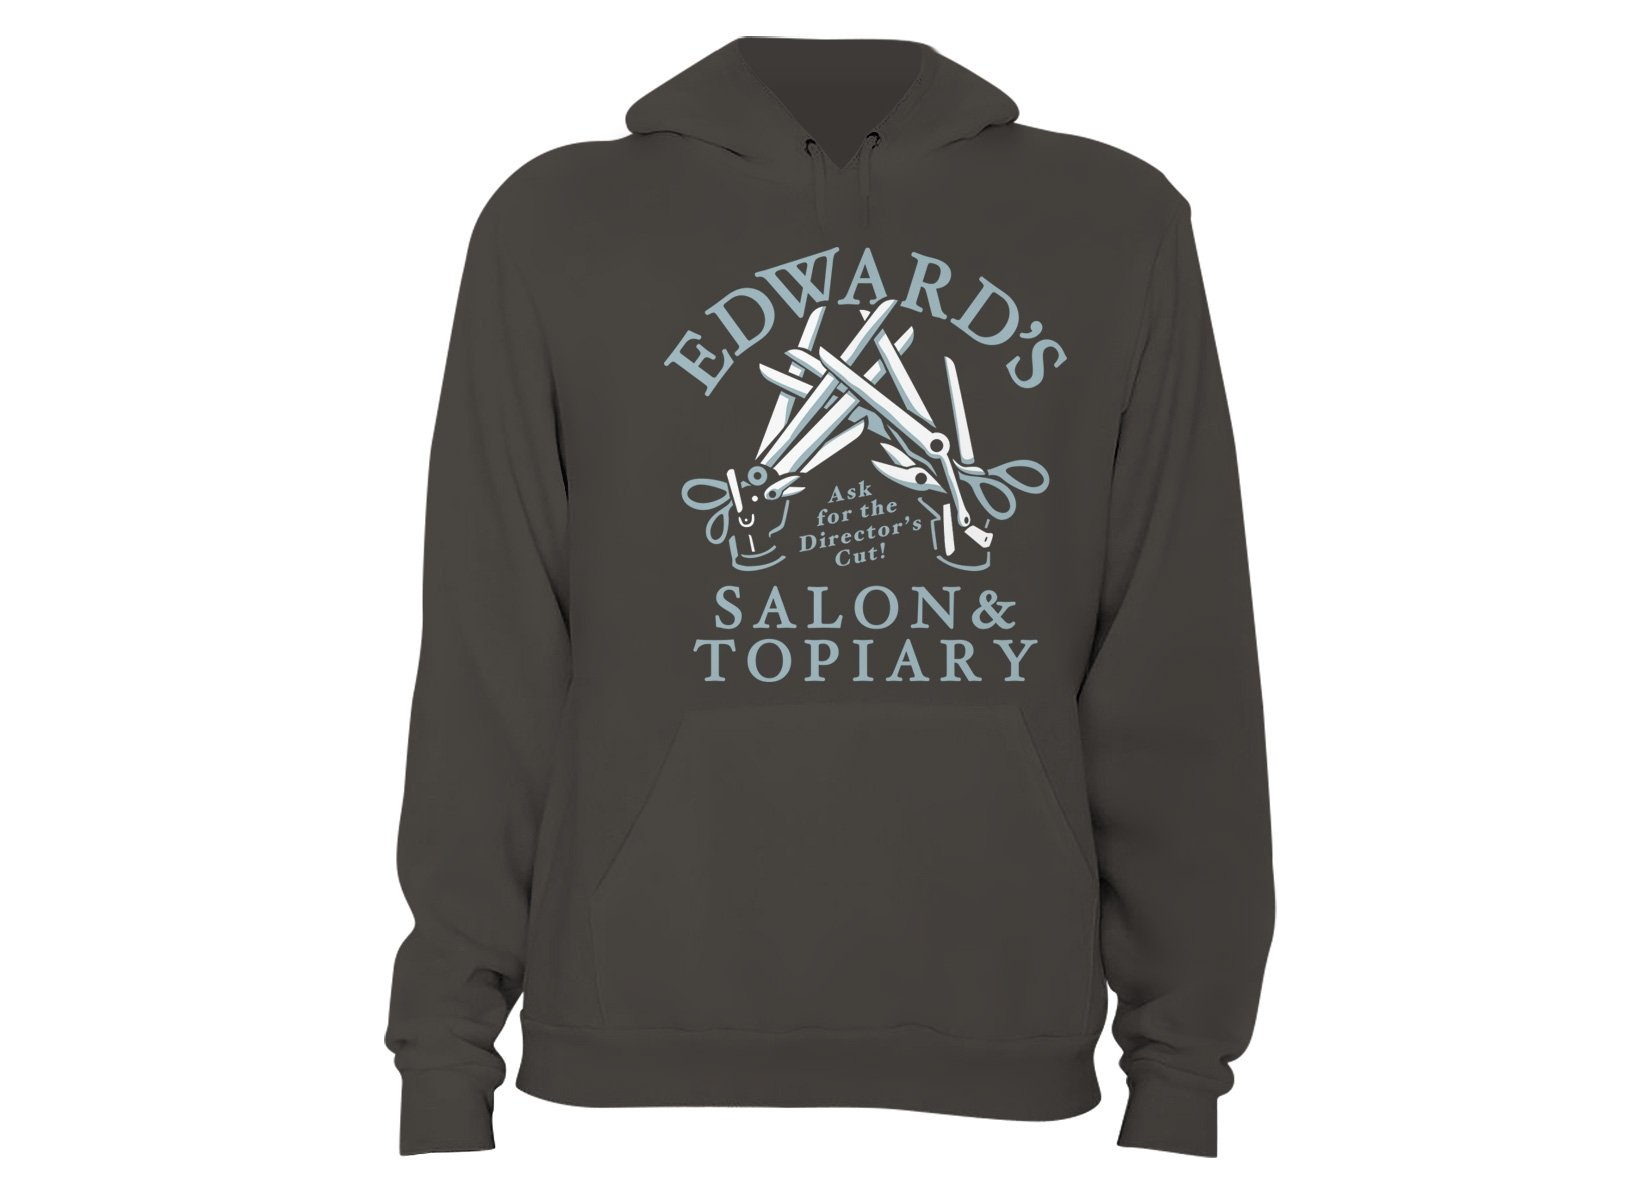 Edward's Salon and Topiary on Hoodie